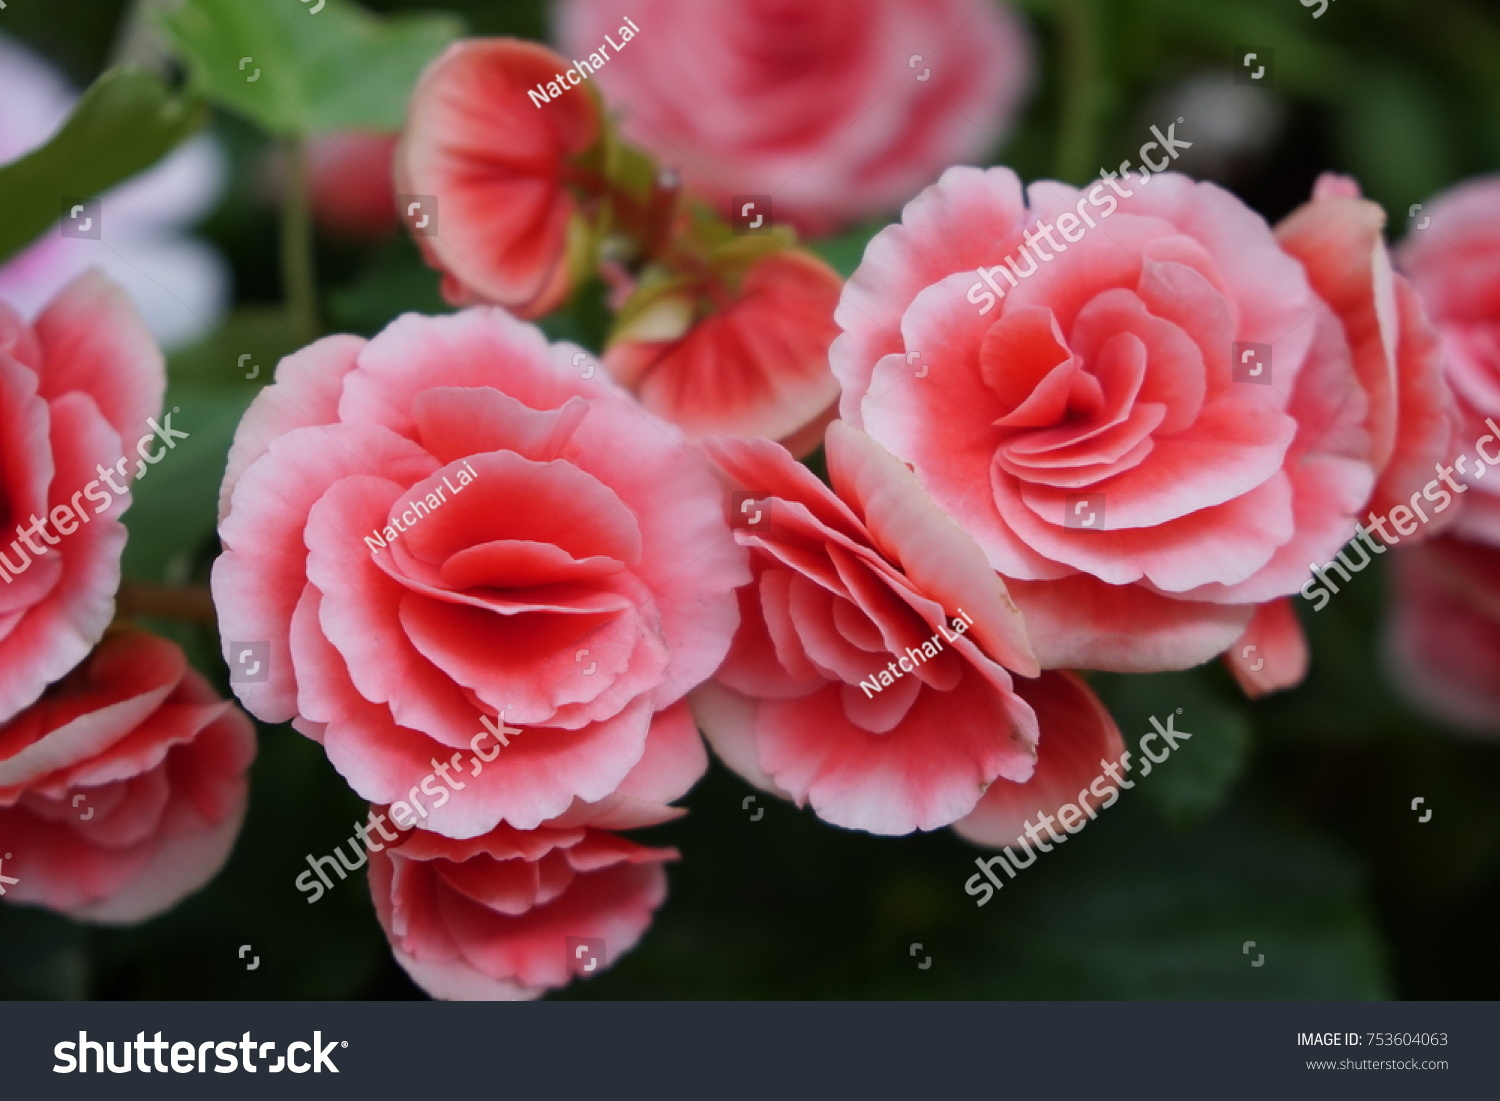 The beautiful valentines pink rose decorationfresh colorful id 753604063 izmirmasajfo